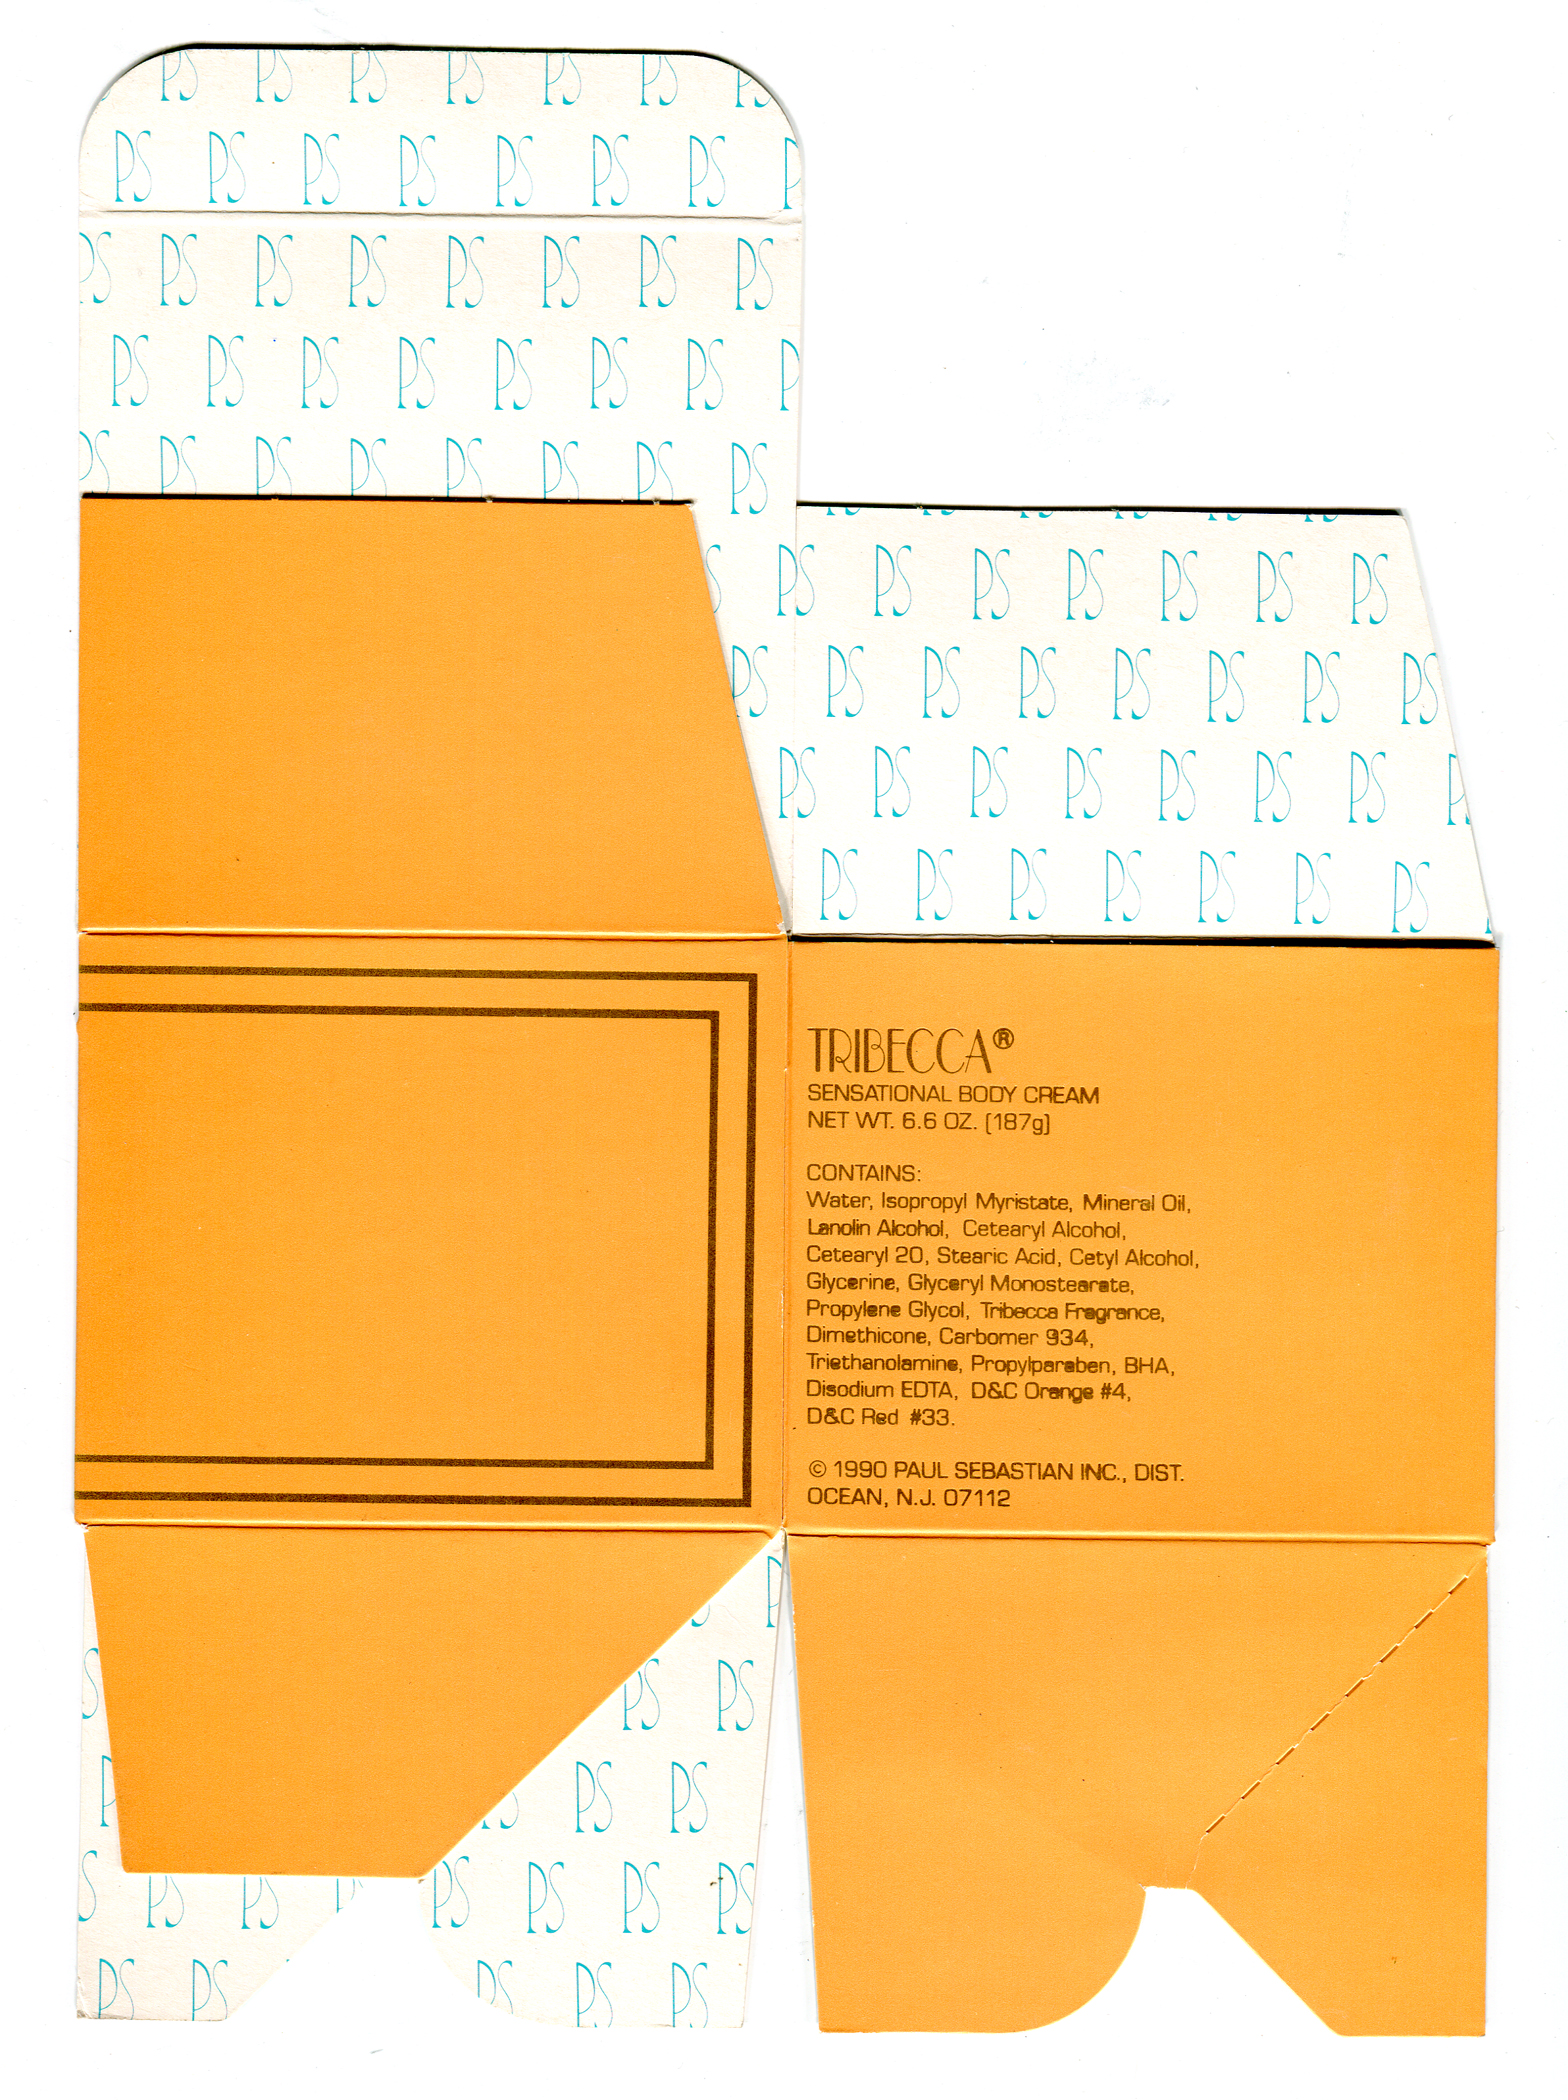 PS Packaging008.jpg